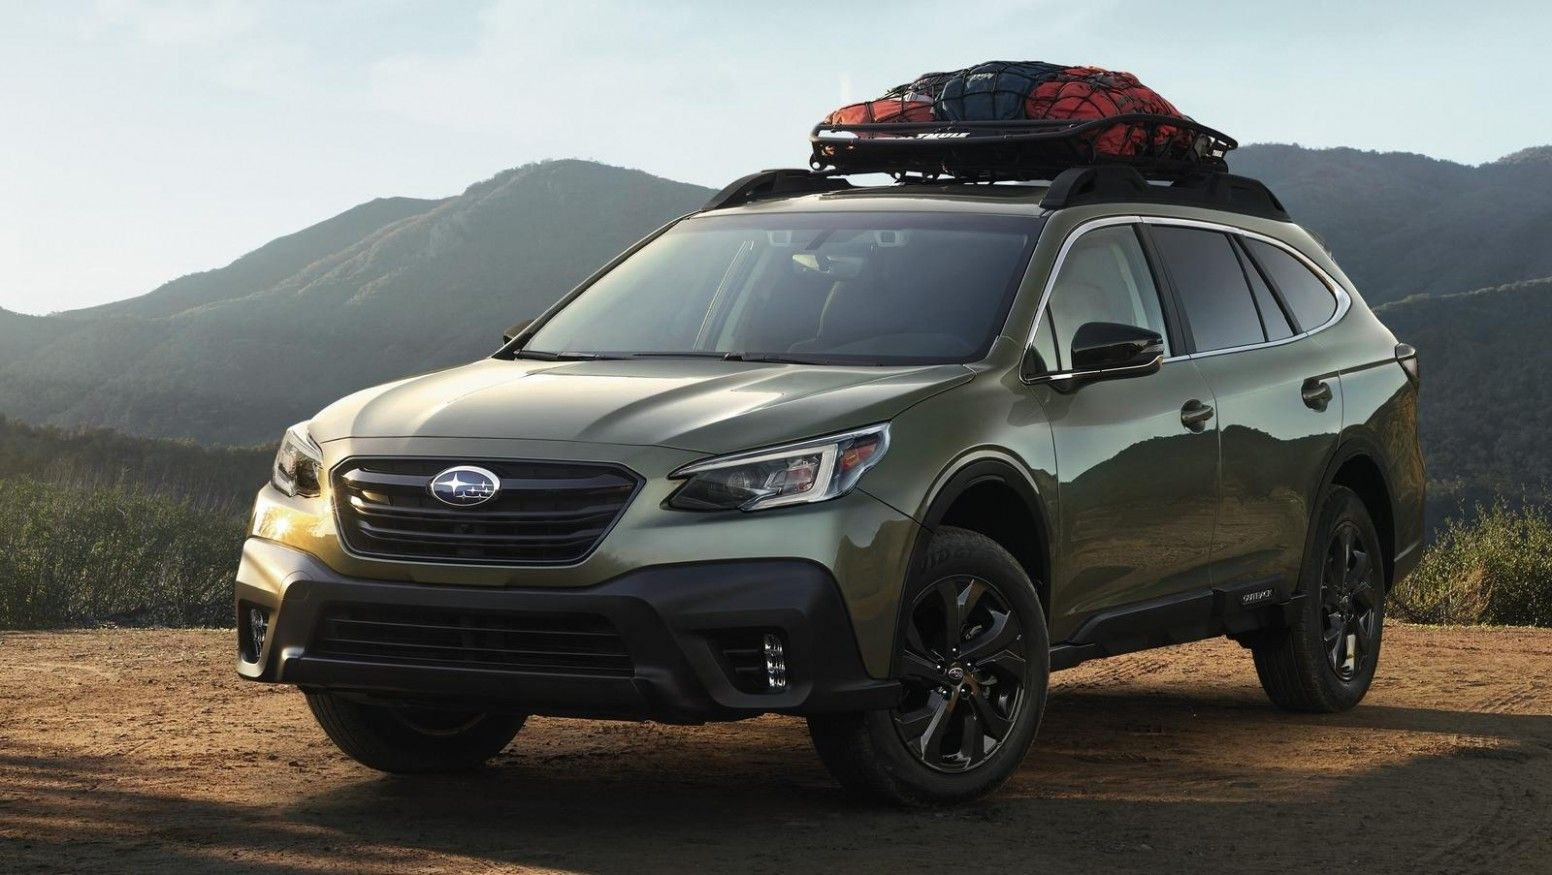 2020 Subaru Outback Dimensions Redesign And Concept Subaru Outback Subaru Subaru Cars